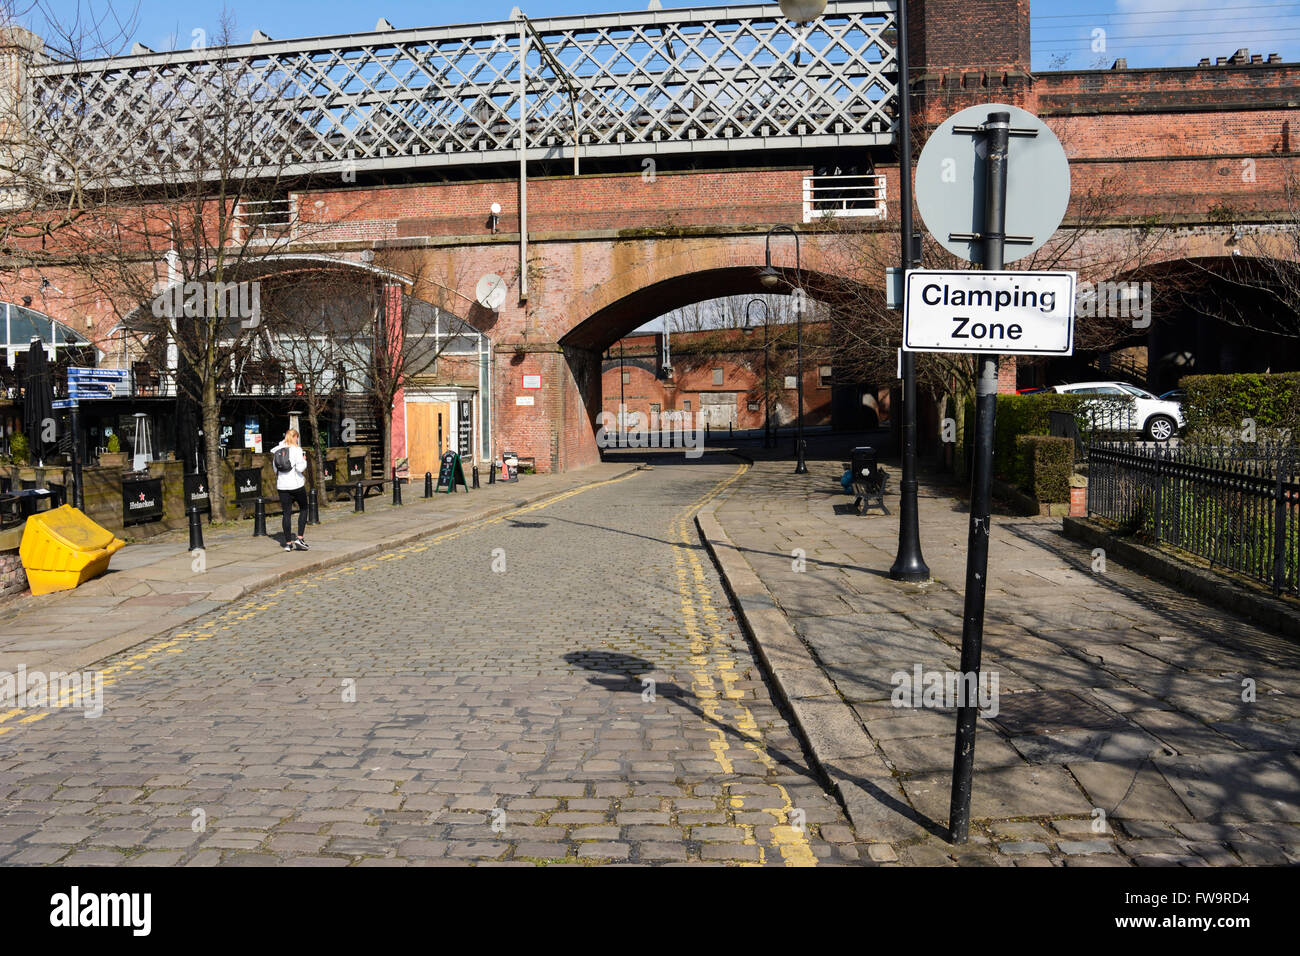 Signpost in Castlefields, Manchester, advising the area is a wheel clamping zone for unauthorised or illegal car - Stock Image